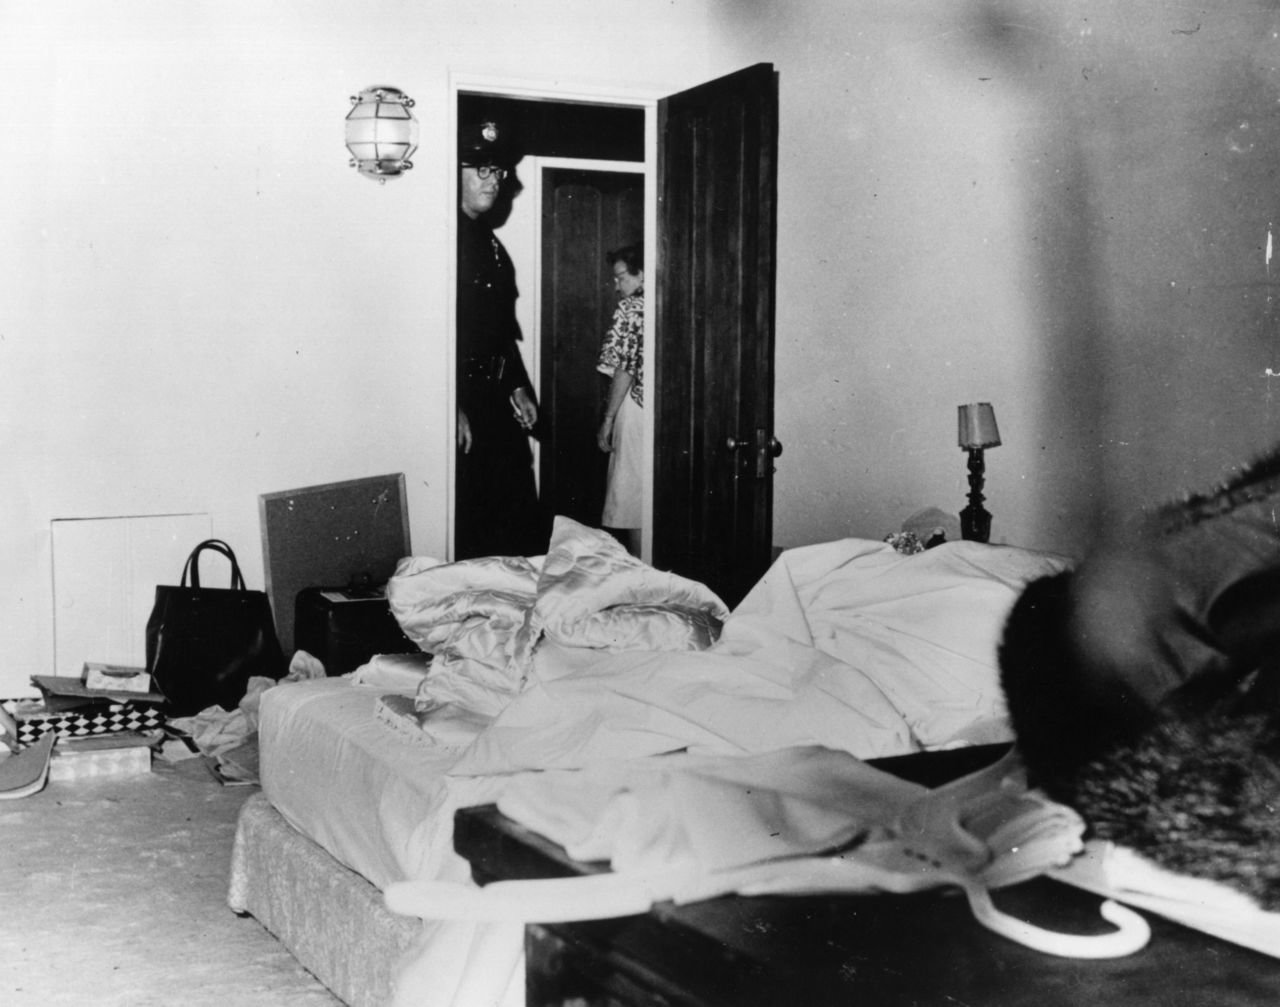 The room where Monroe died